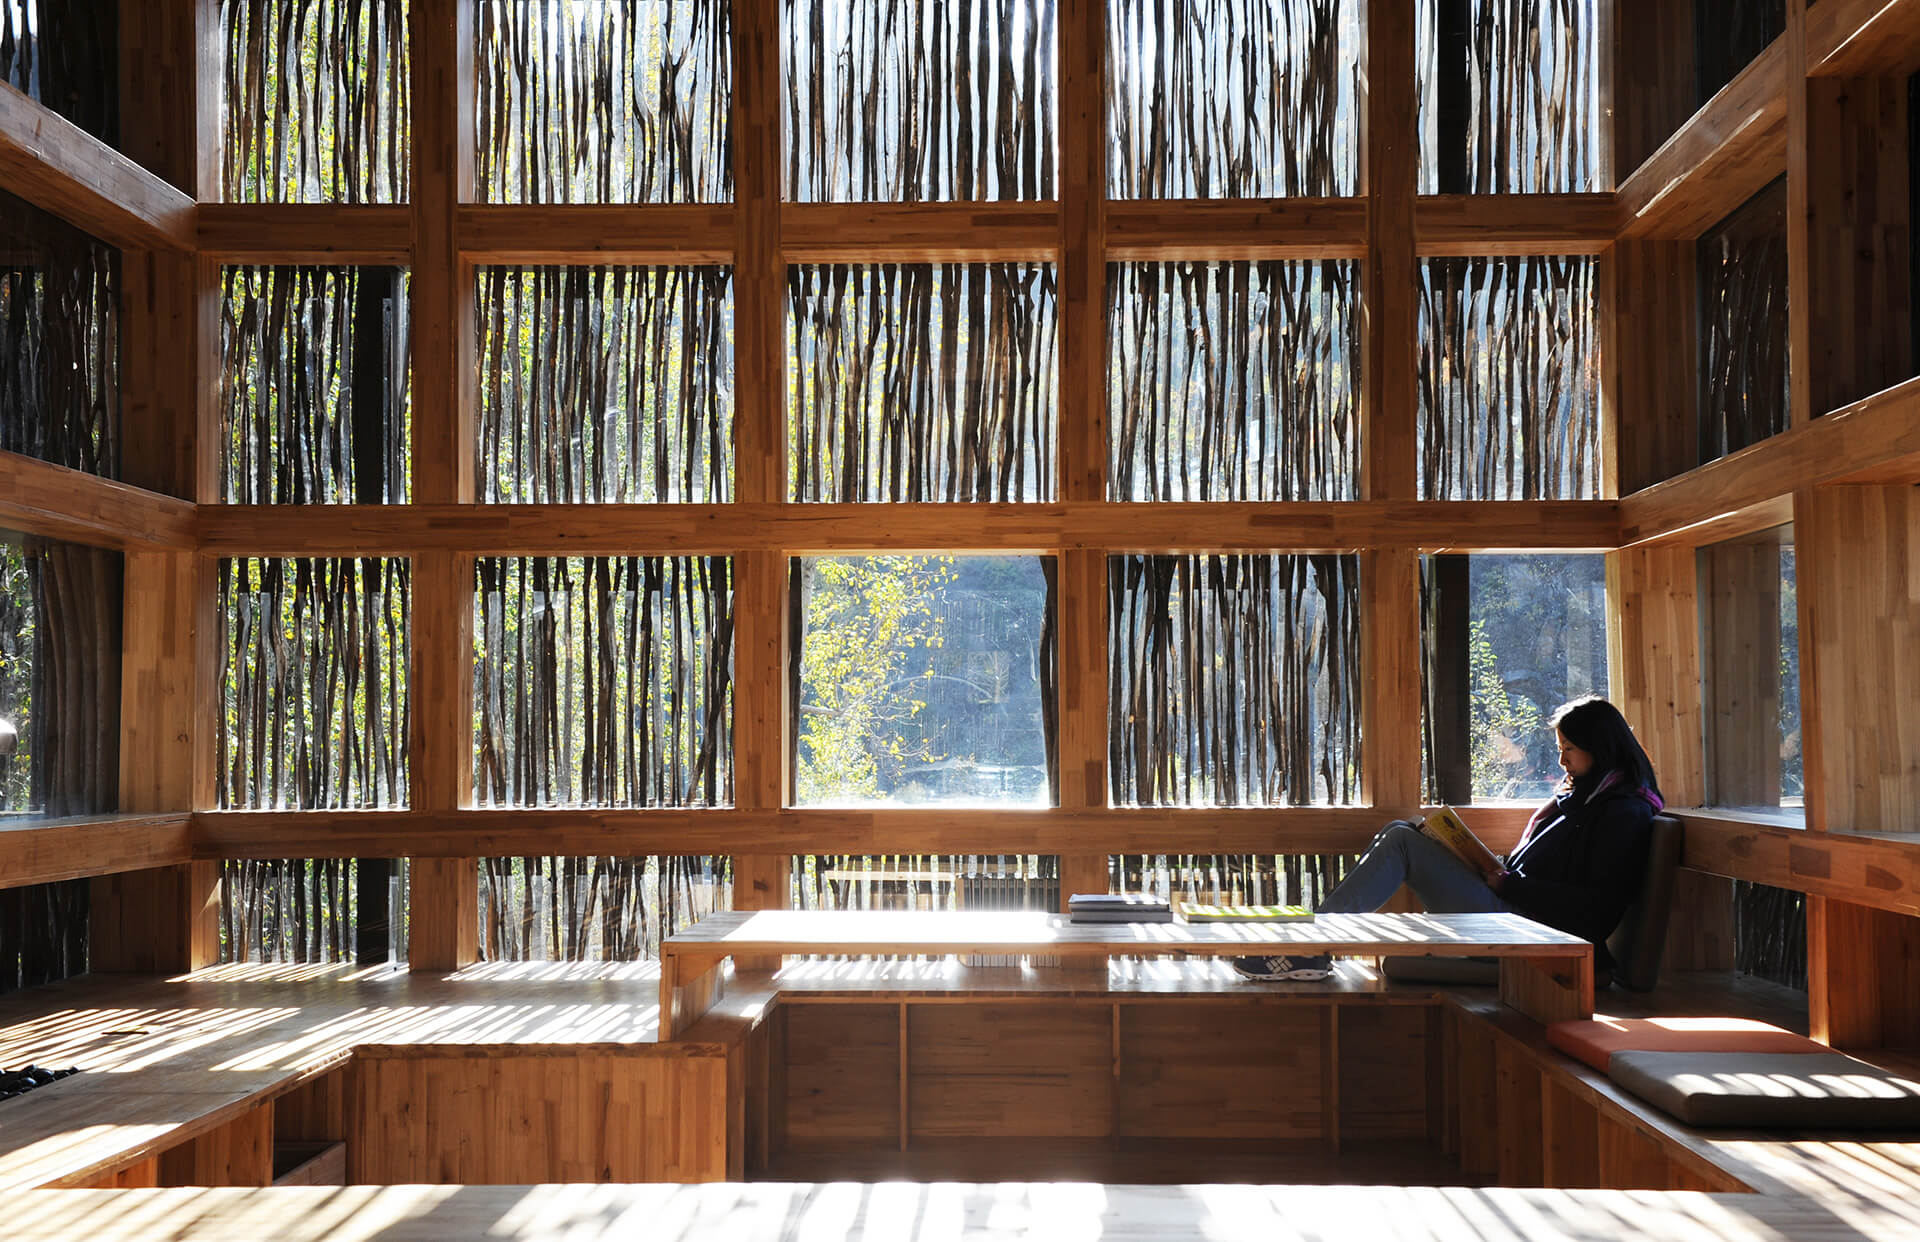 The library with fully glazed interior contains quiet and contemplative reading spaces and a series of platforms which integrate shelving for books | Li Xiadong | STIRworld